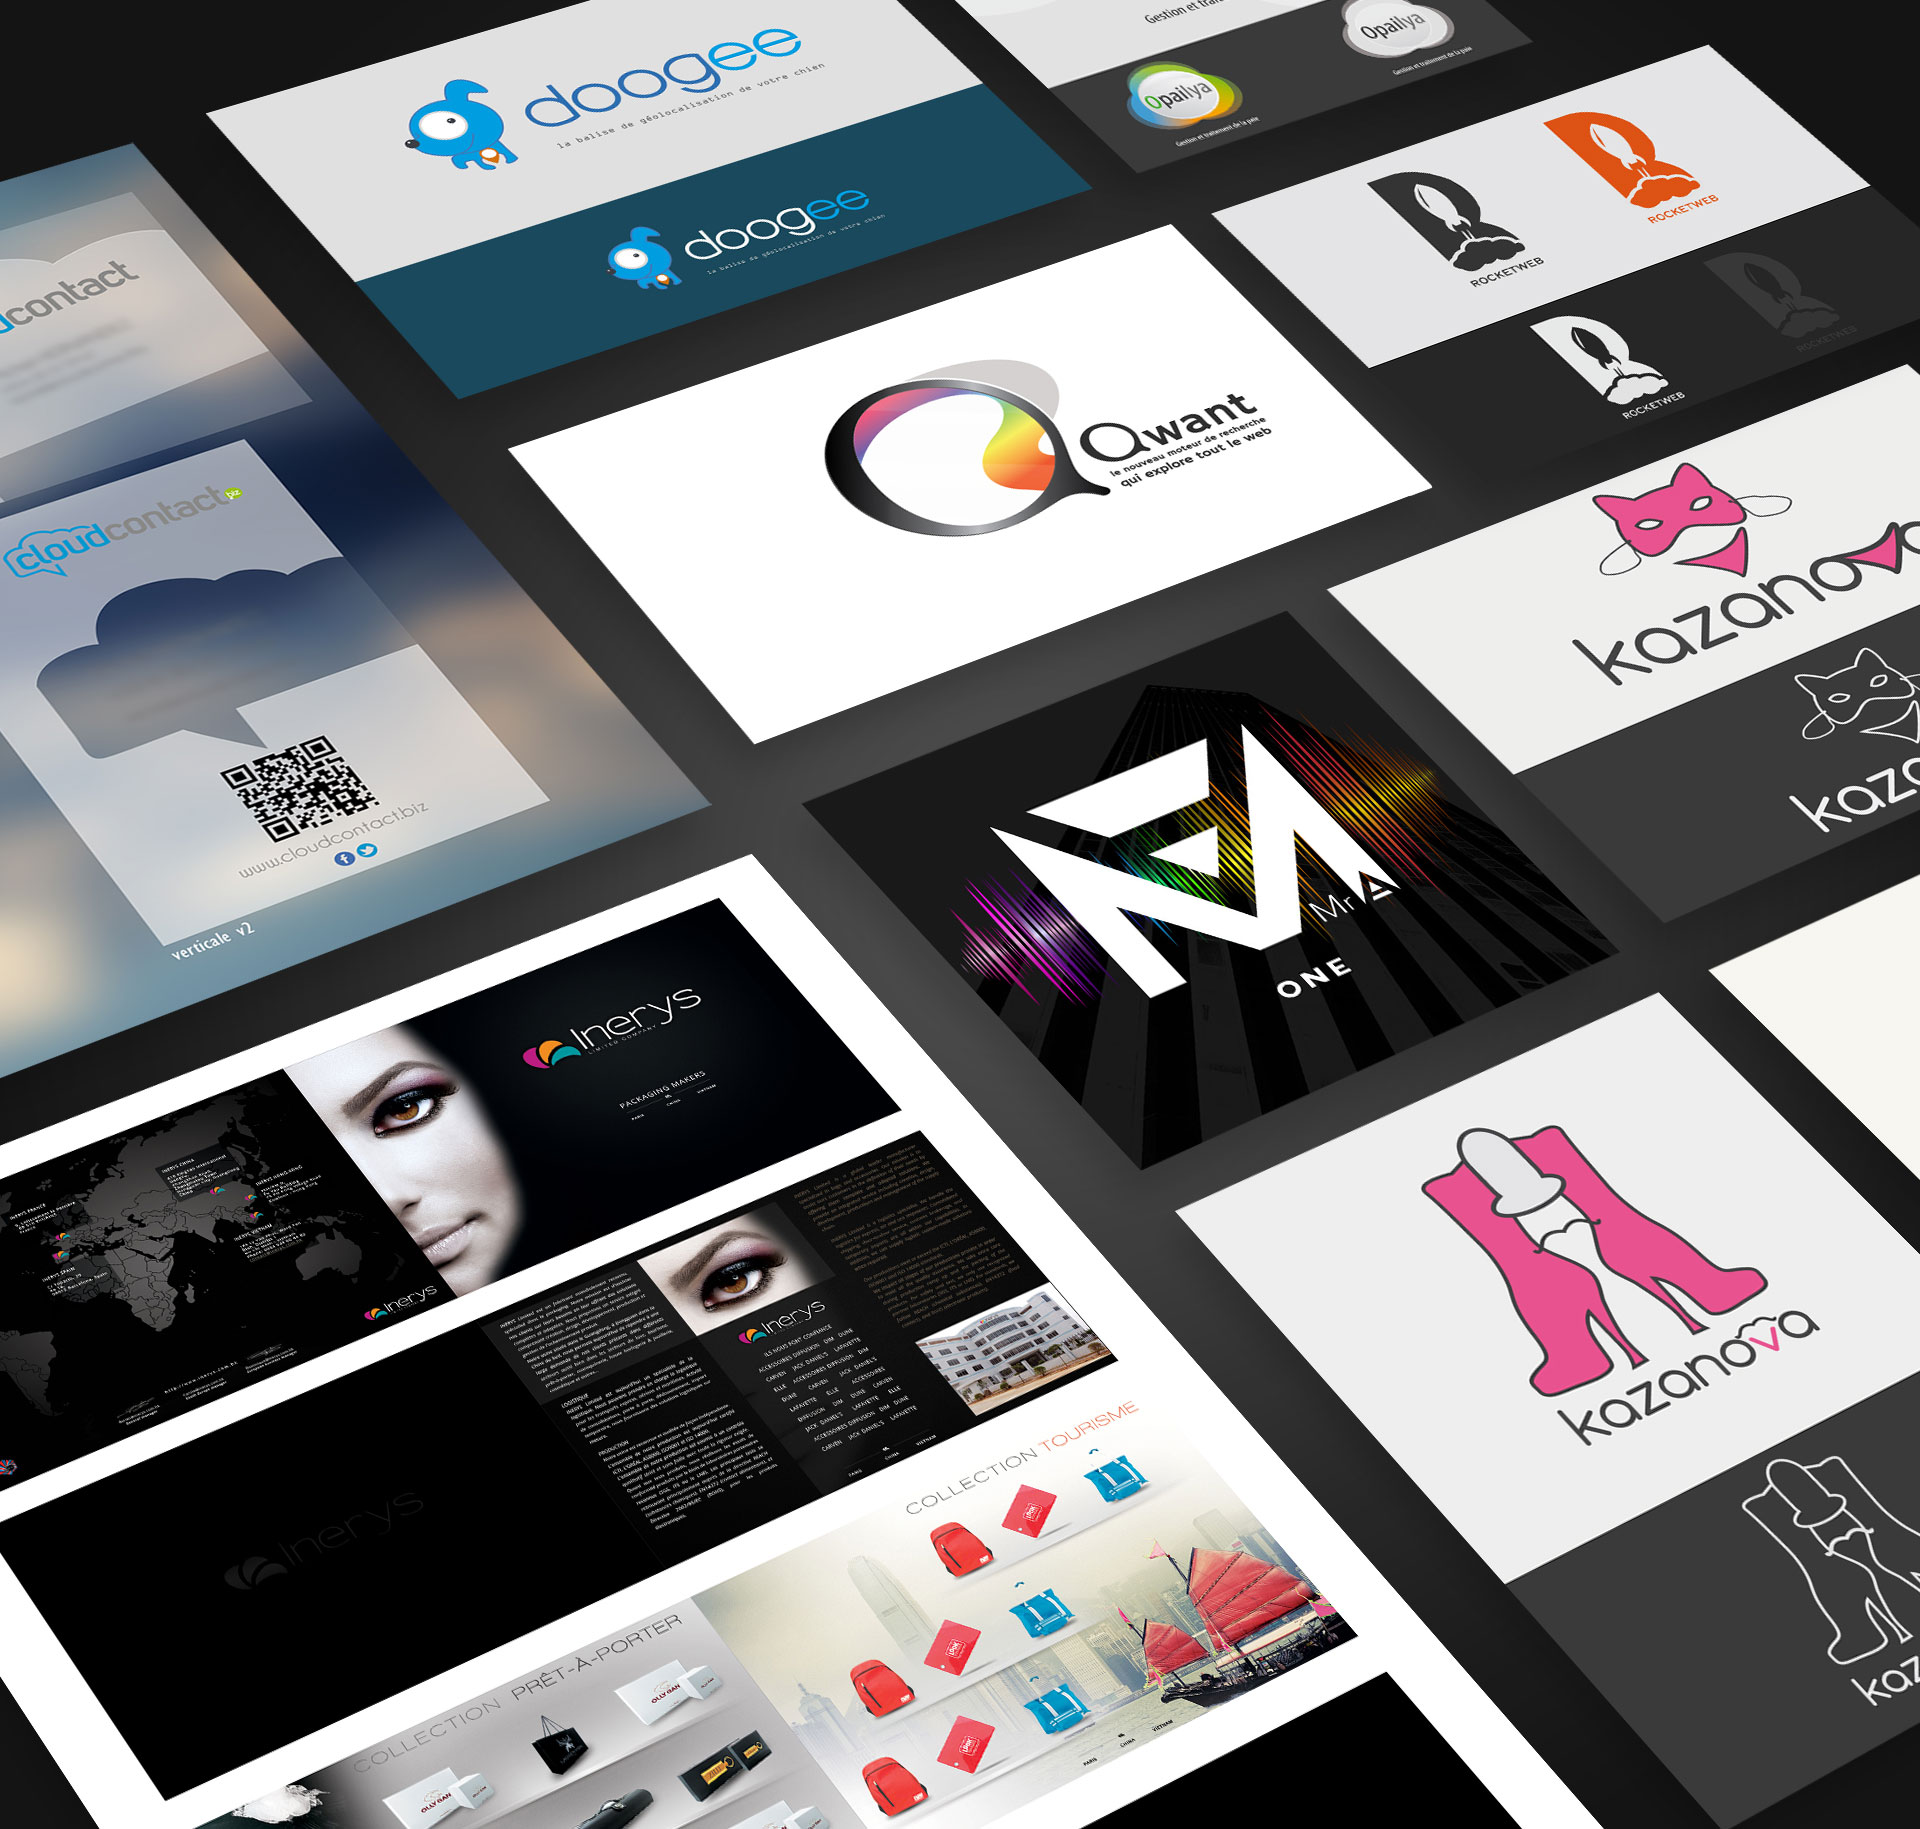 floh-design graphic design